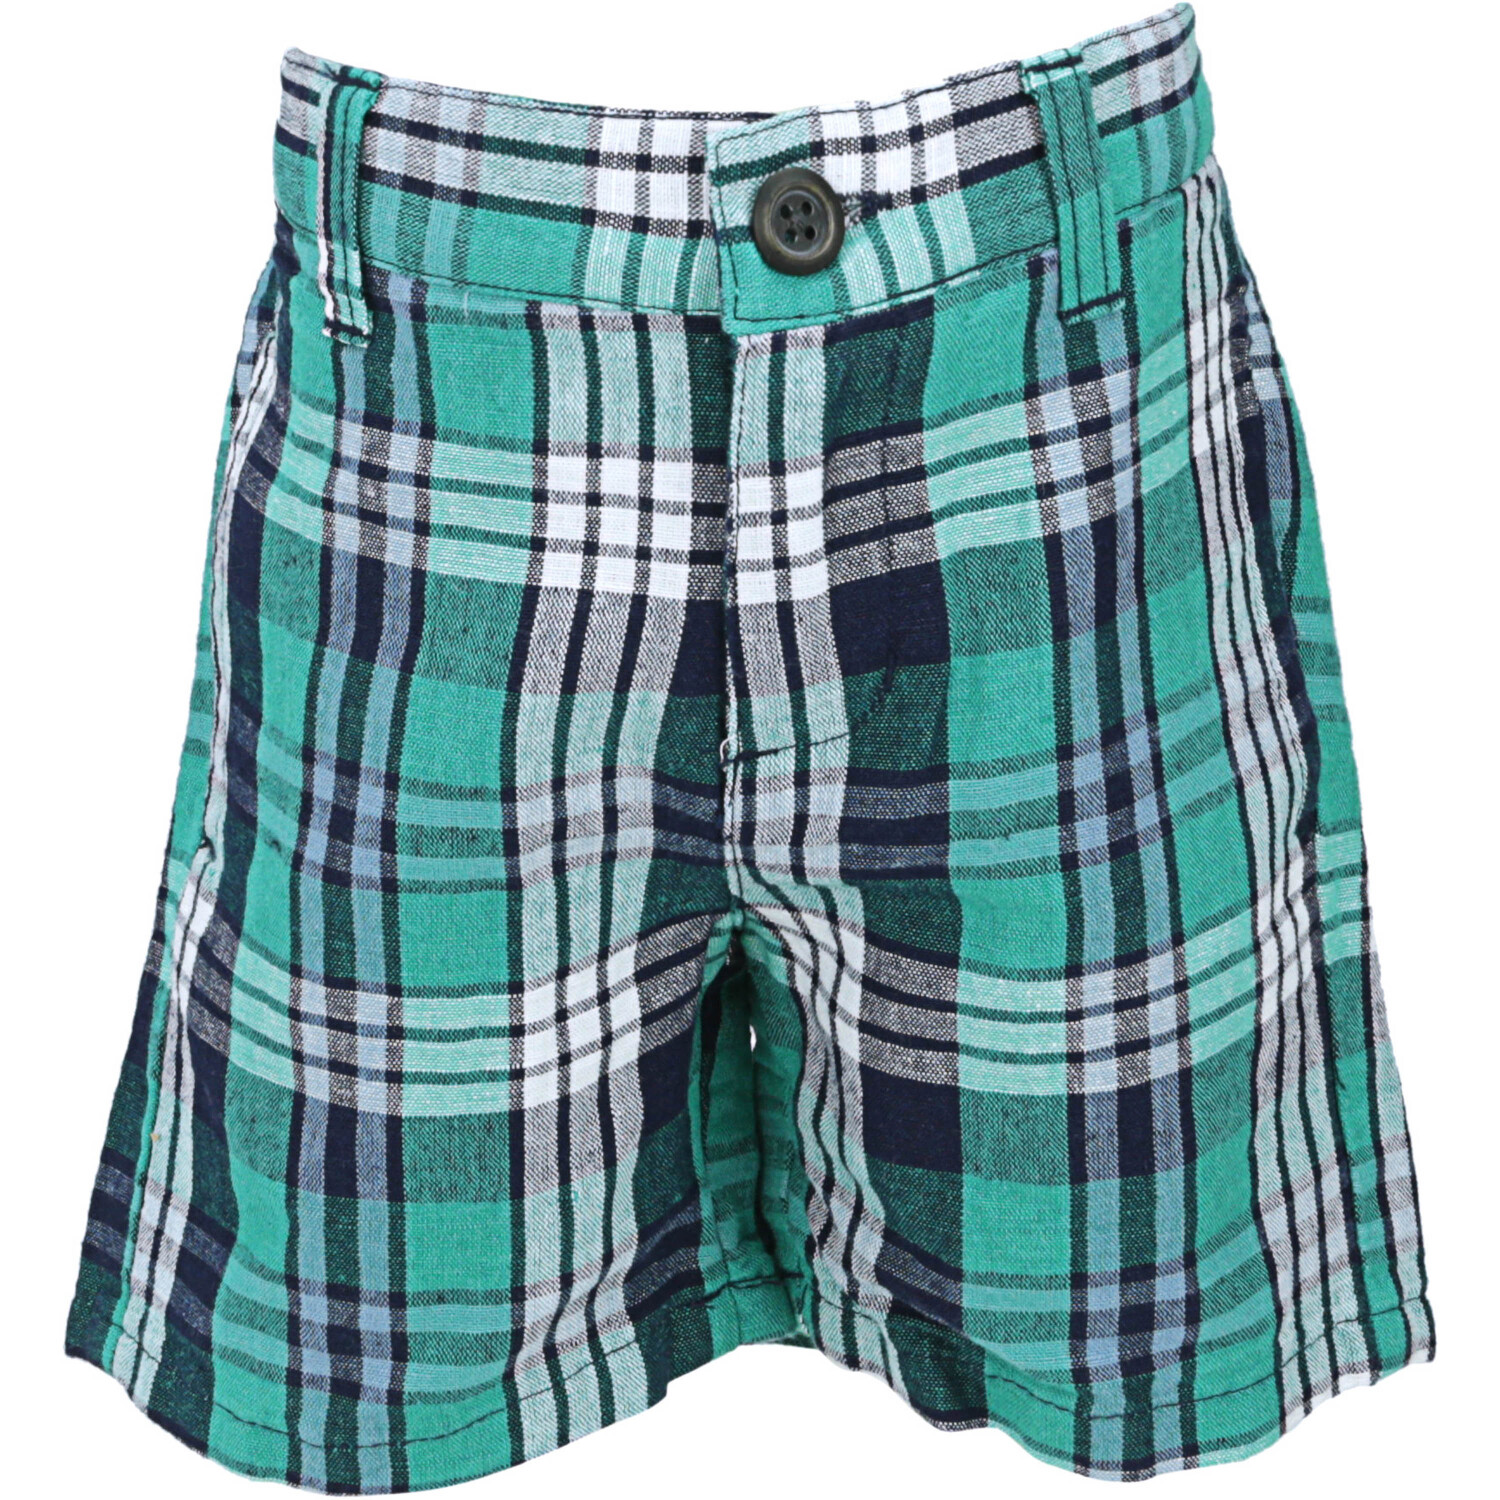 Janie And Jack Boy's Green / Navy Plaid Linen Short - 2T